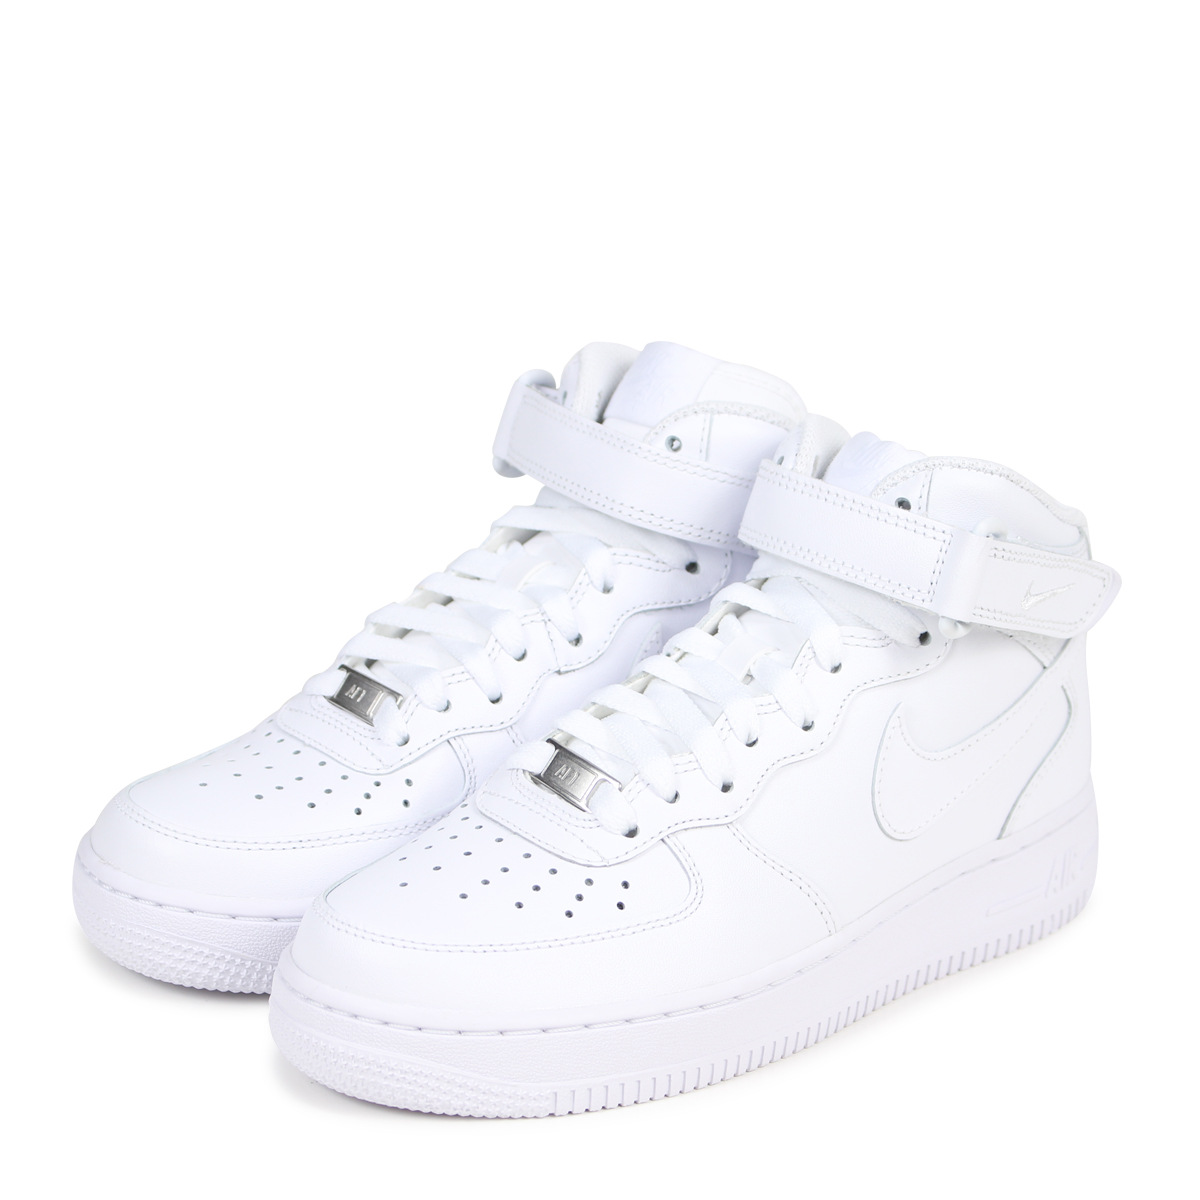 allsports nike nike air force sneakers womens wmns air. Black Bedroom Furniture Sets. Home Design Ideas